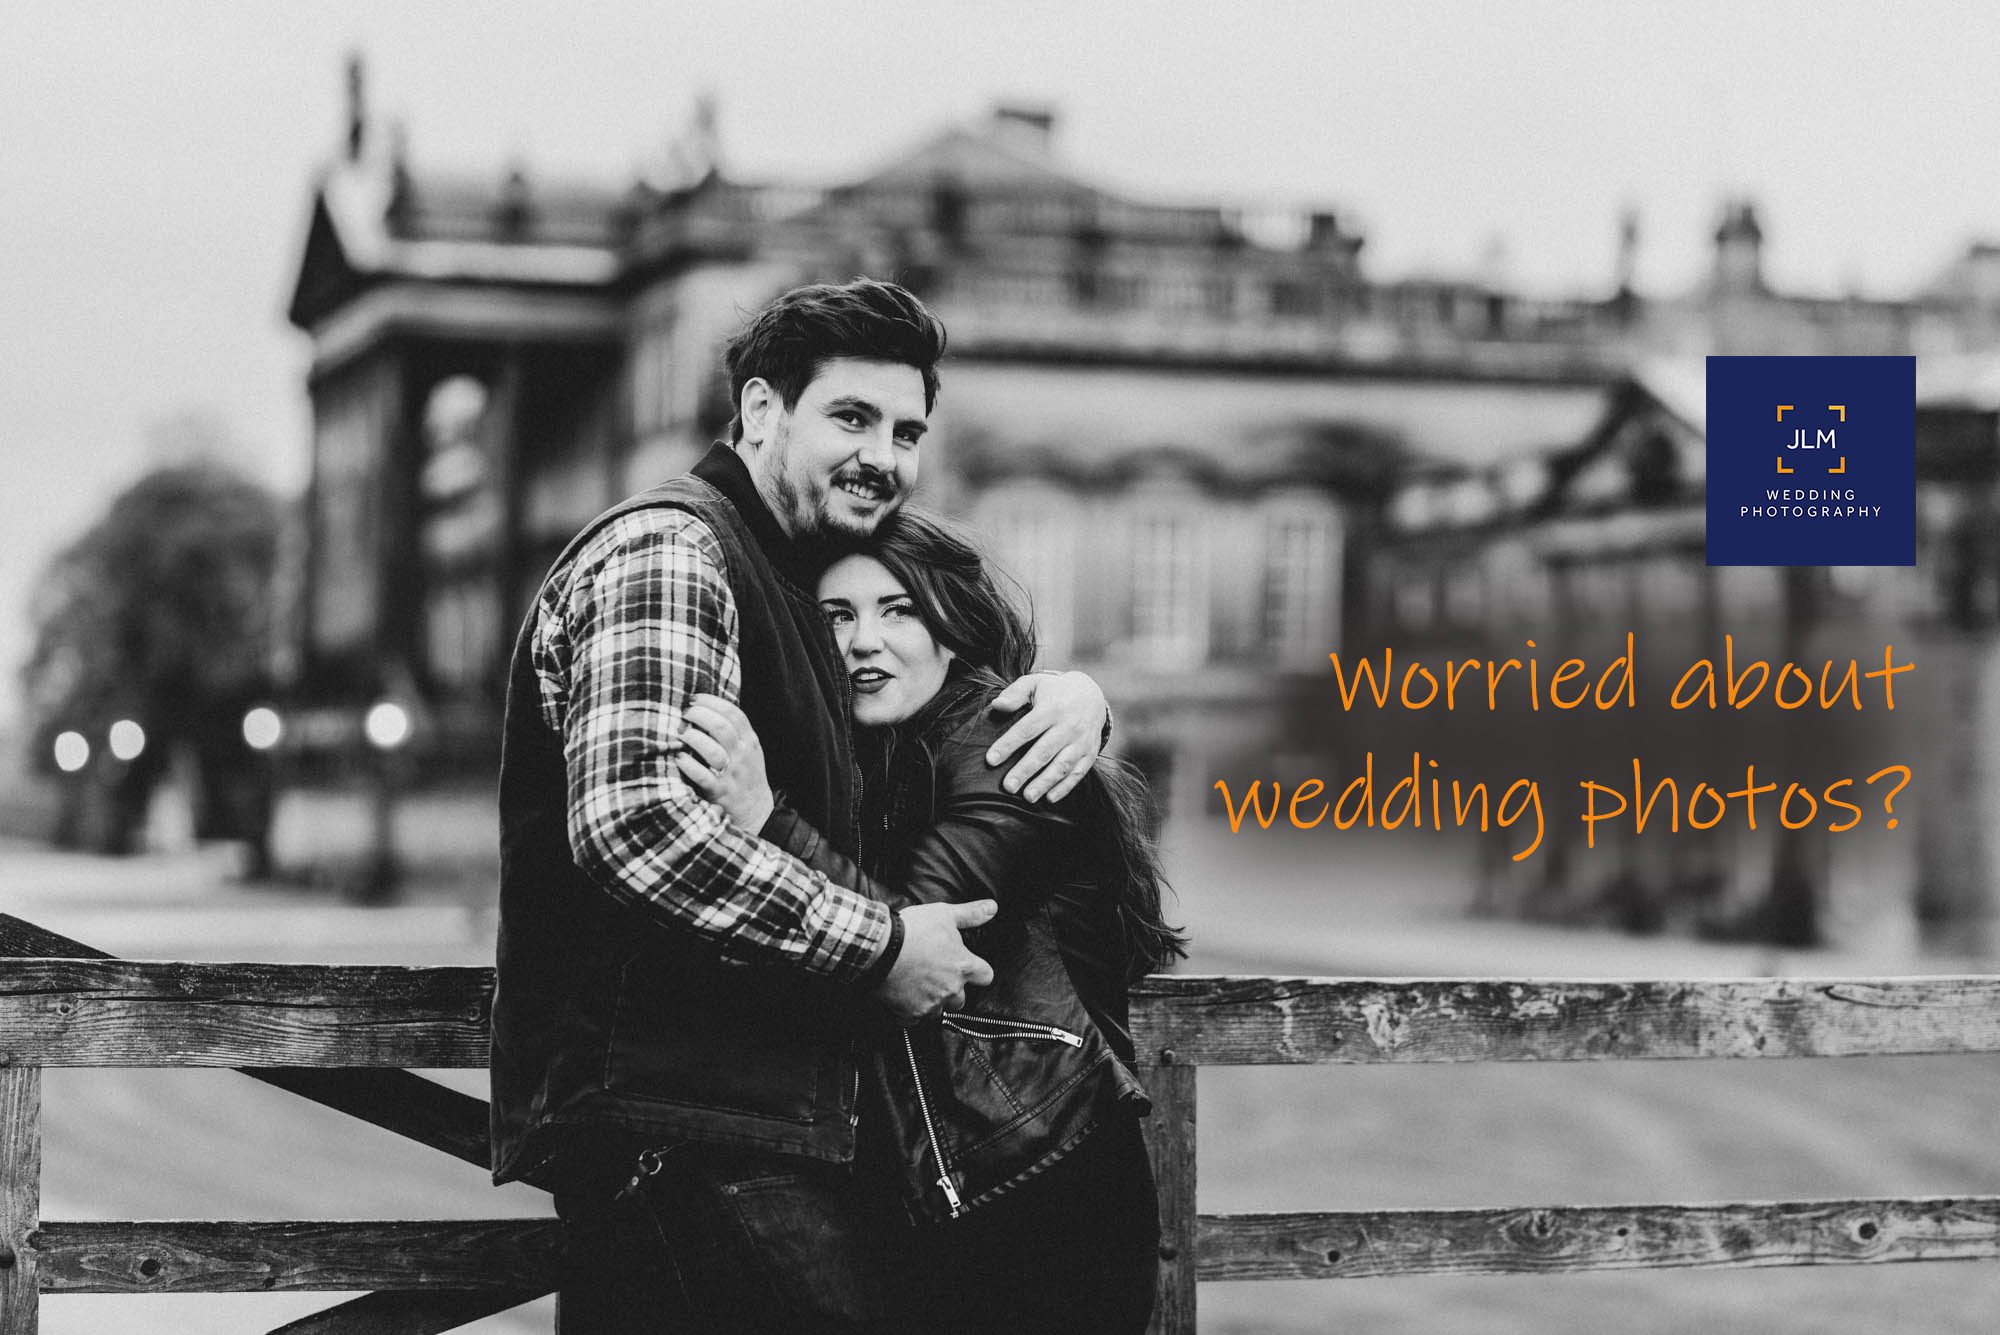 Anxious About Having Wedding Photos Taken? You're Not The Only One